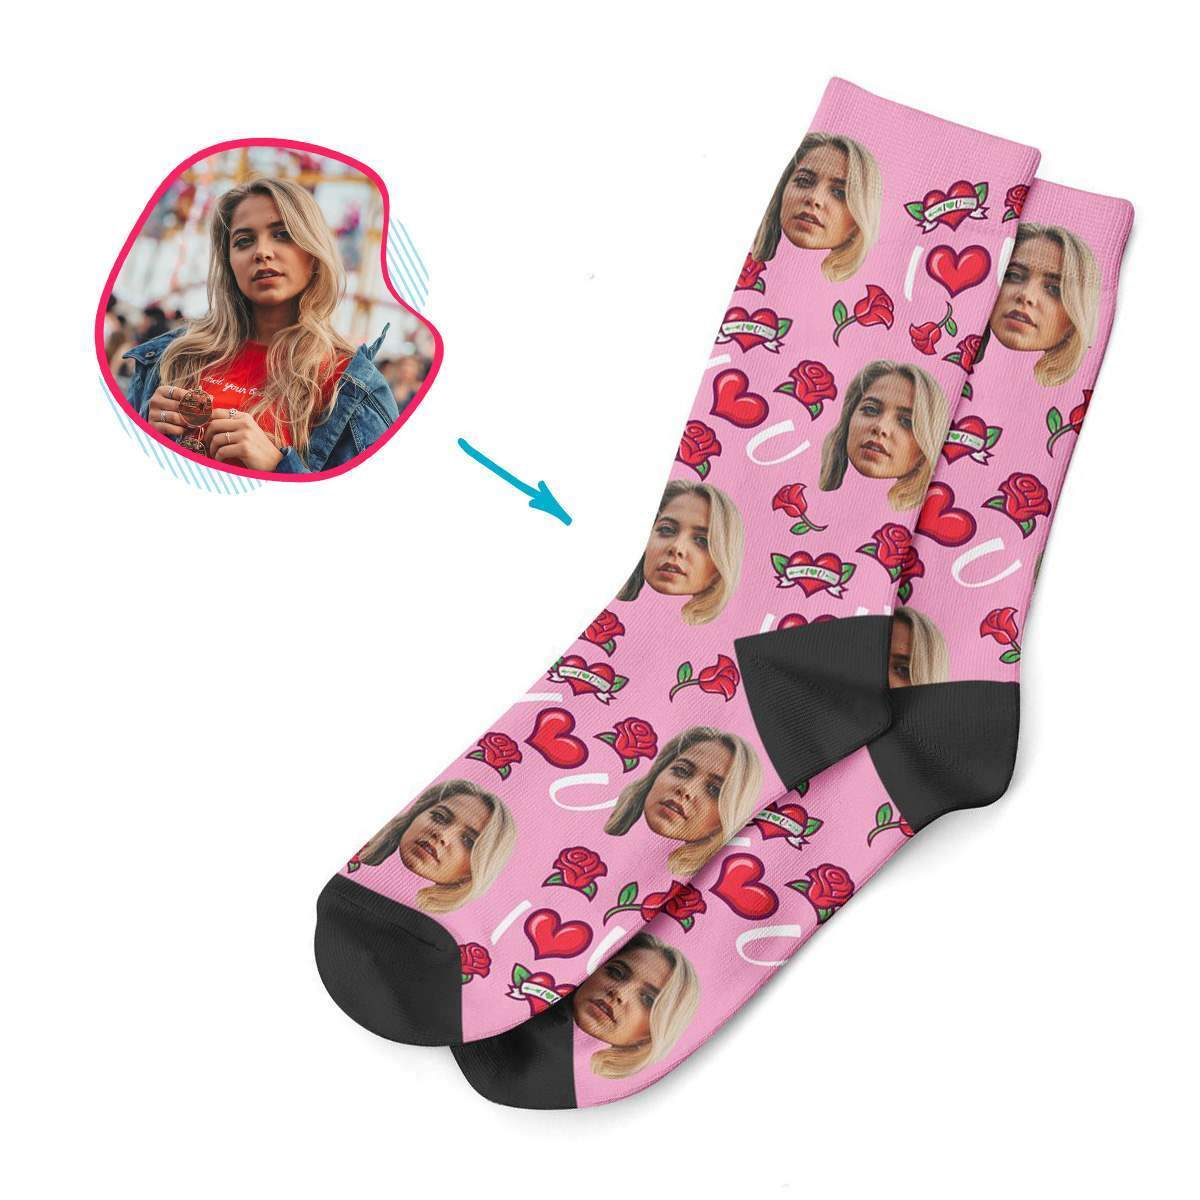 pink Valentines socks personalized with photo of face printed on them